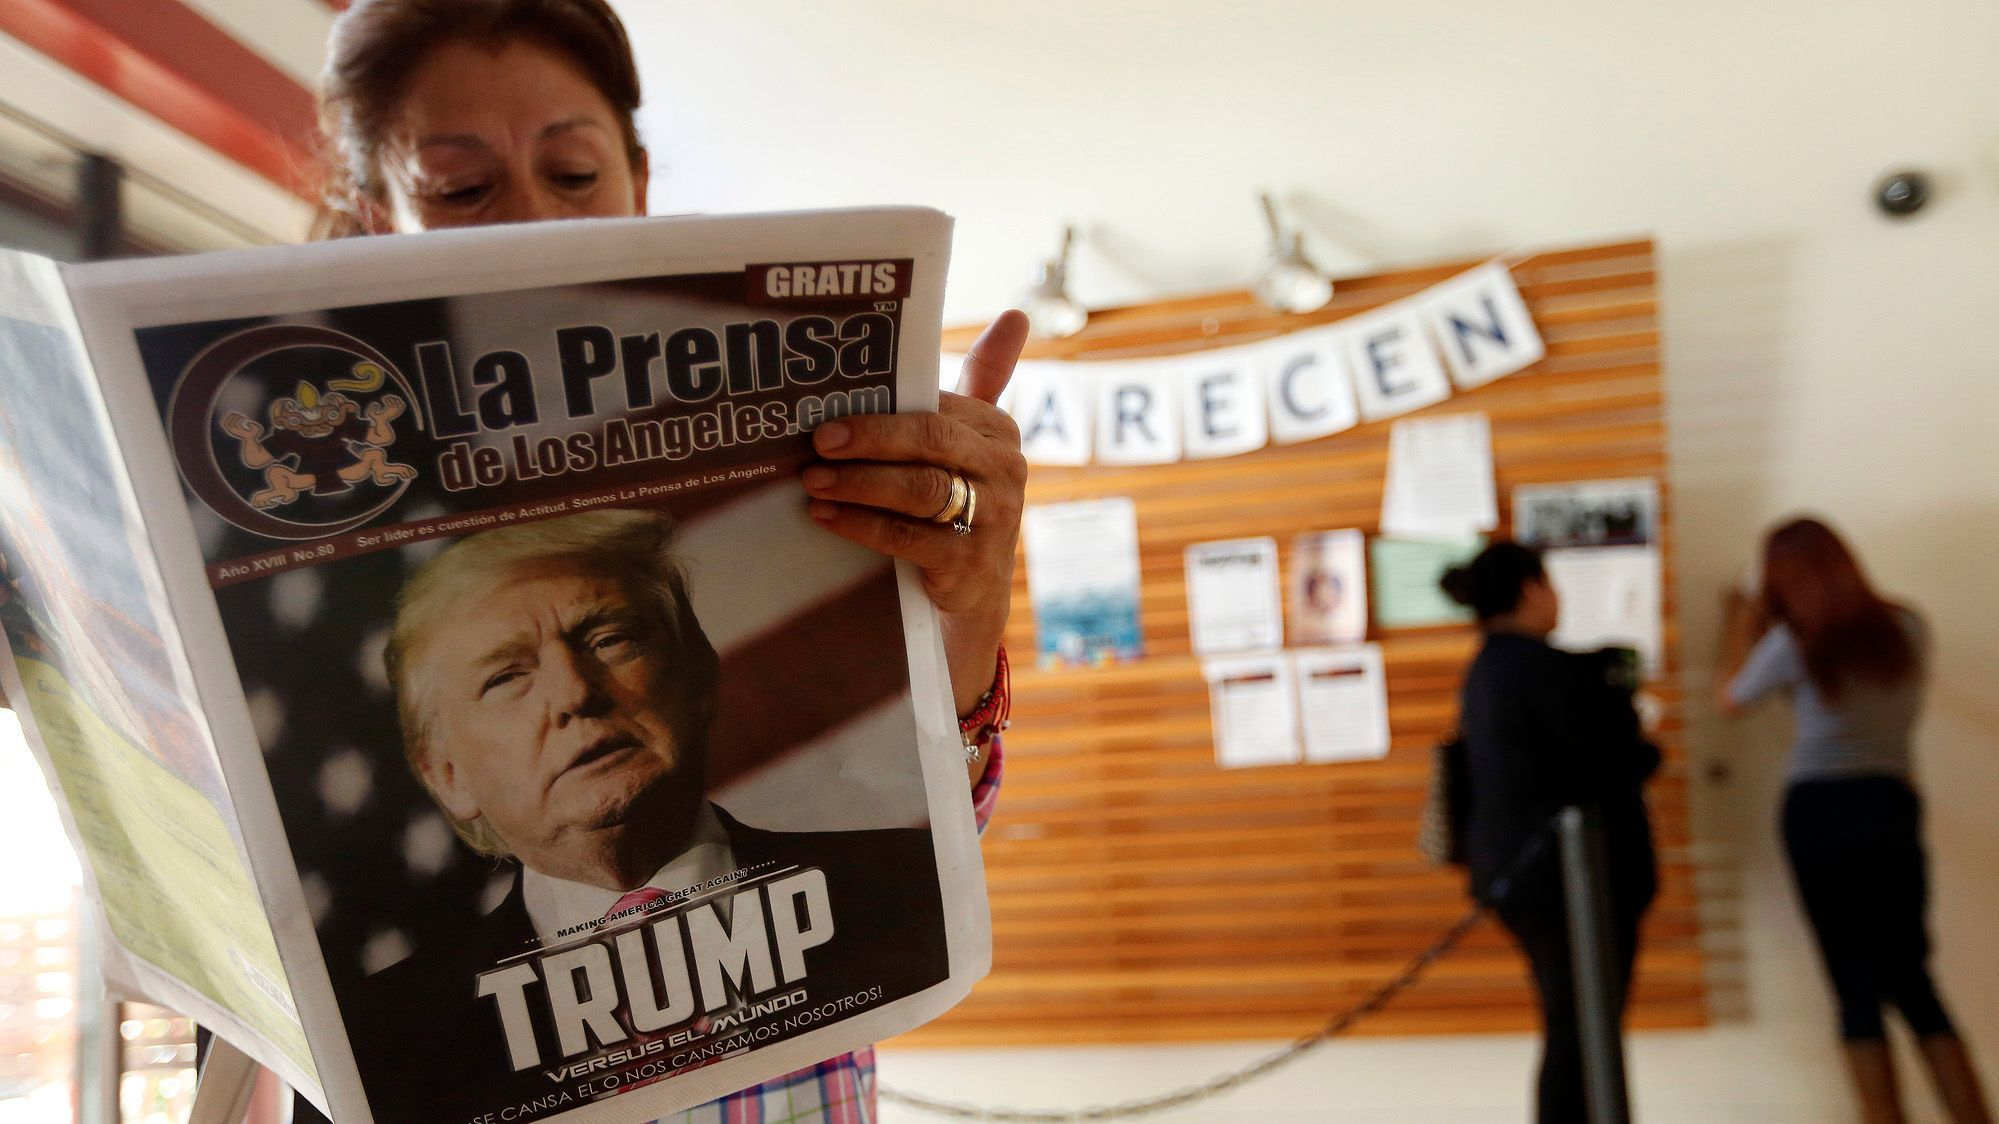 Vences Olivia, 52, reads a local newspaper while waiting for legal counsel at the Central American Resource Center.